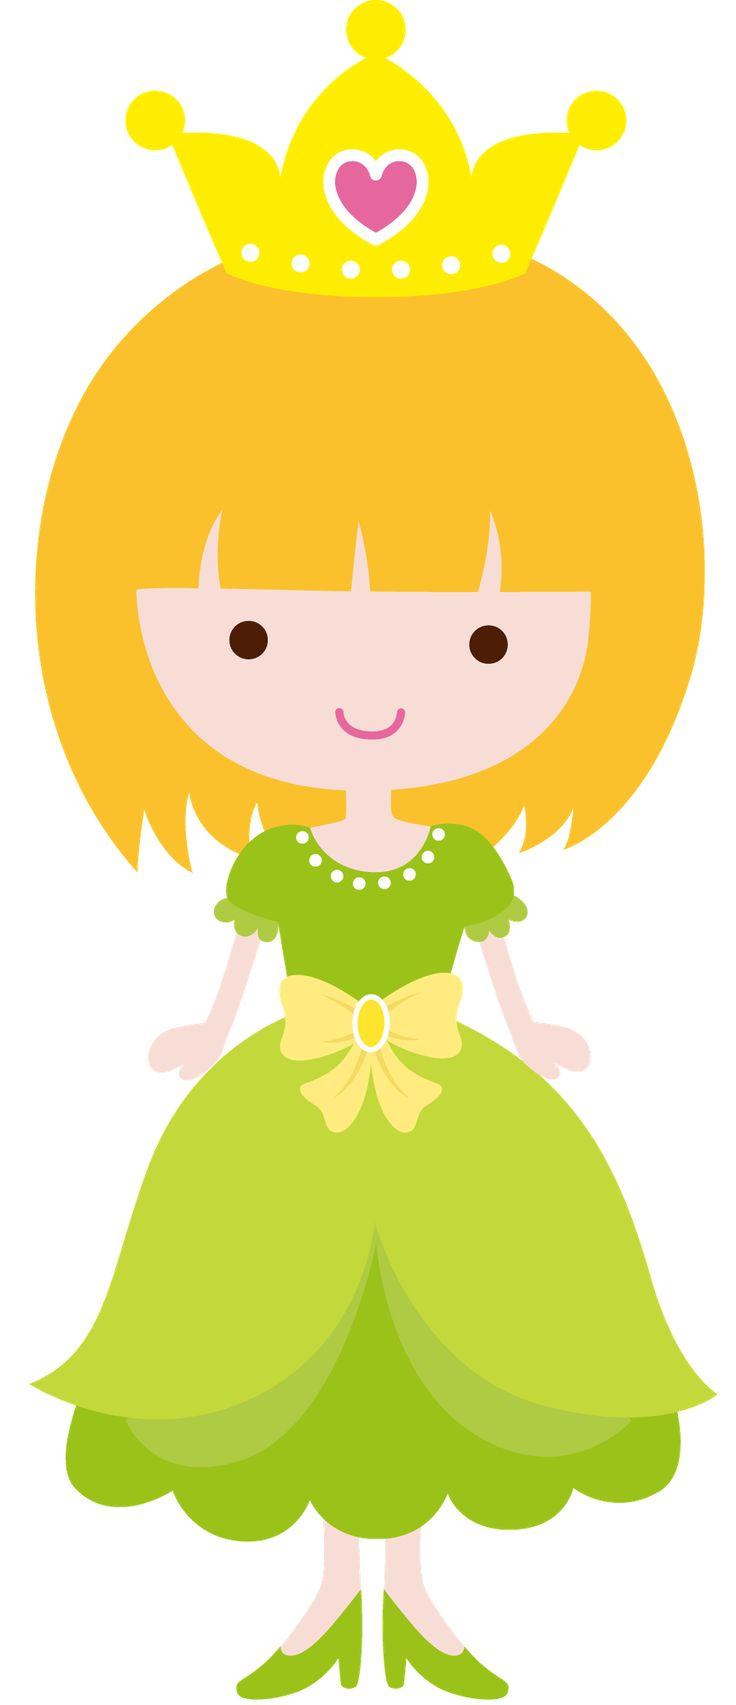 17 Best Images About Clip Art On Pinterest Cute Princess